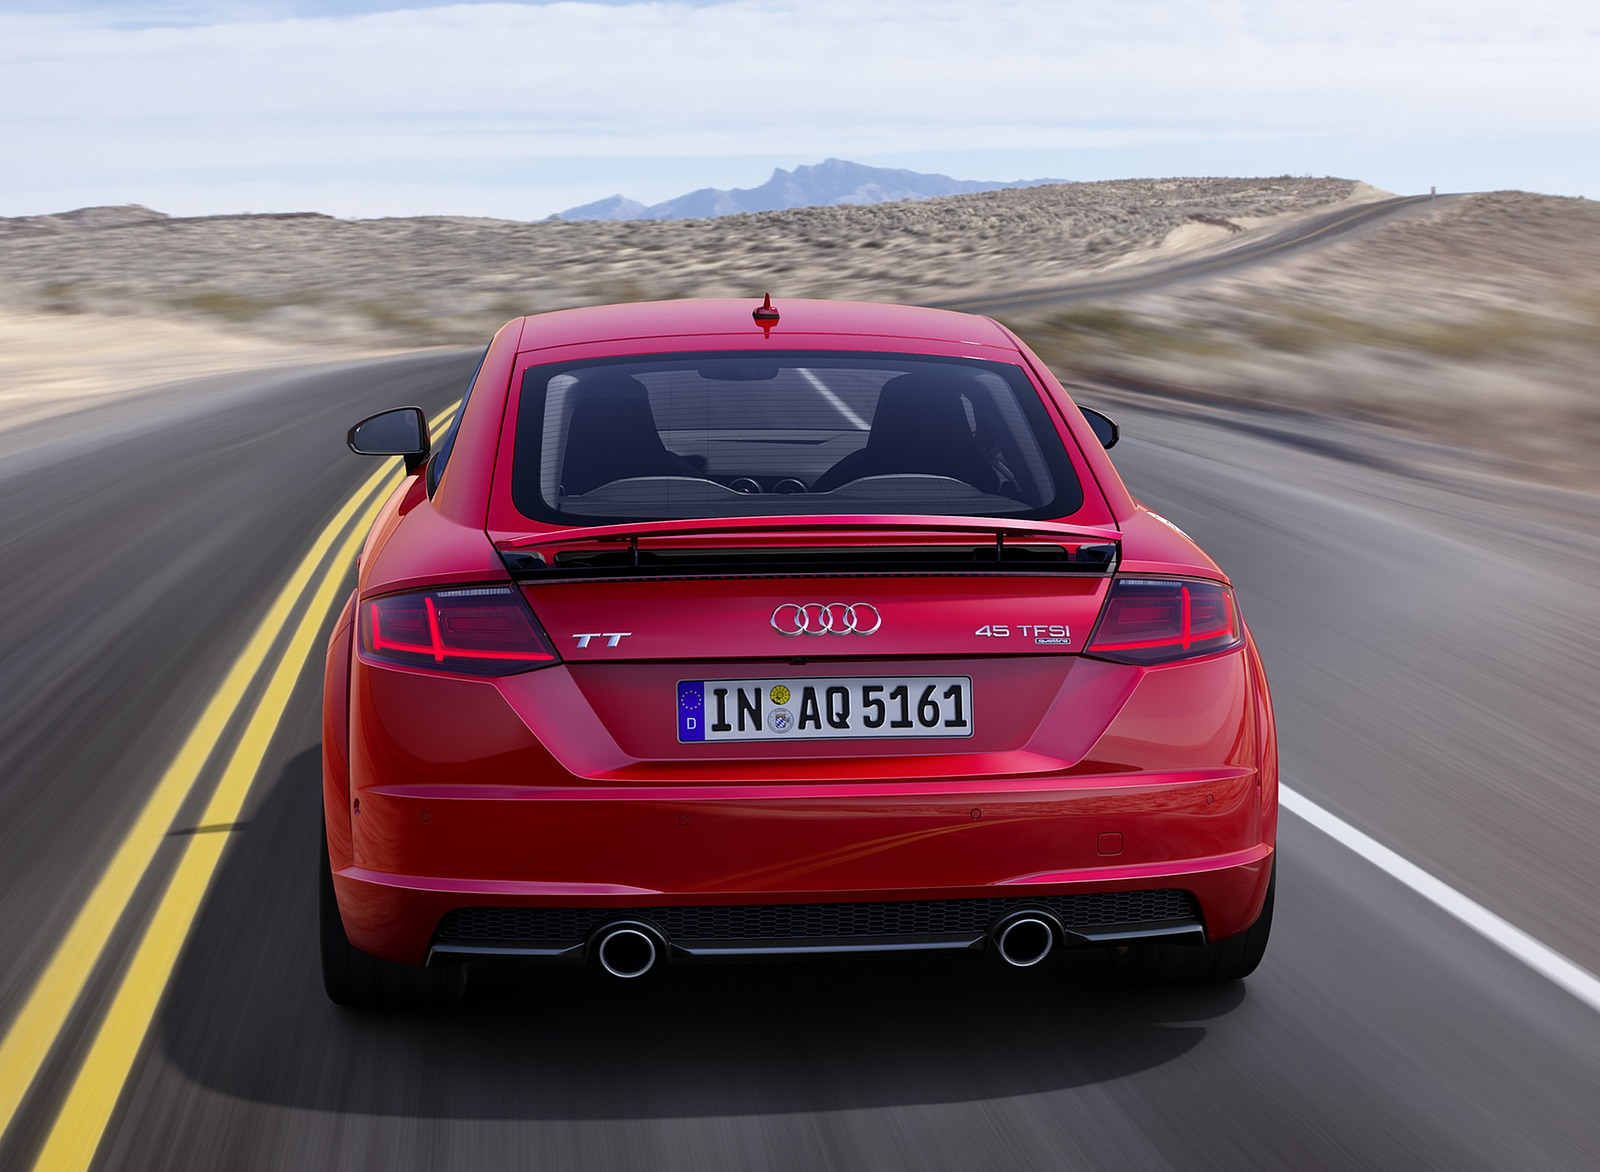 2019 Audi TT Coupe (Color: Tango Red) Rear Wallpaper (3)